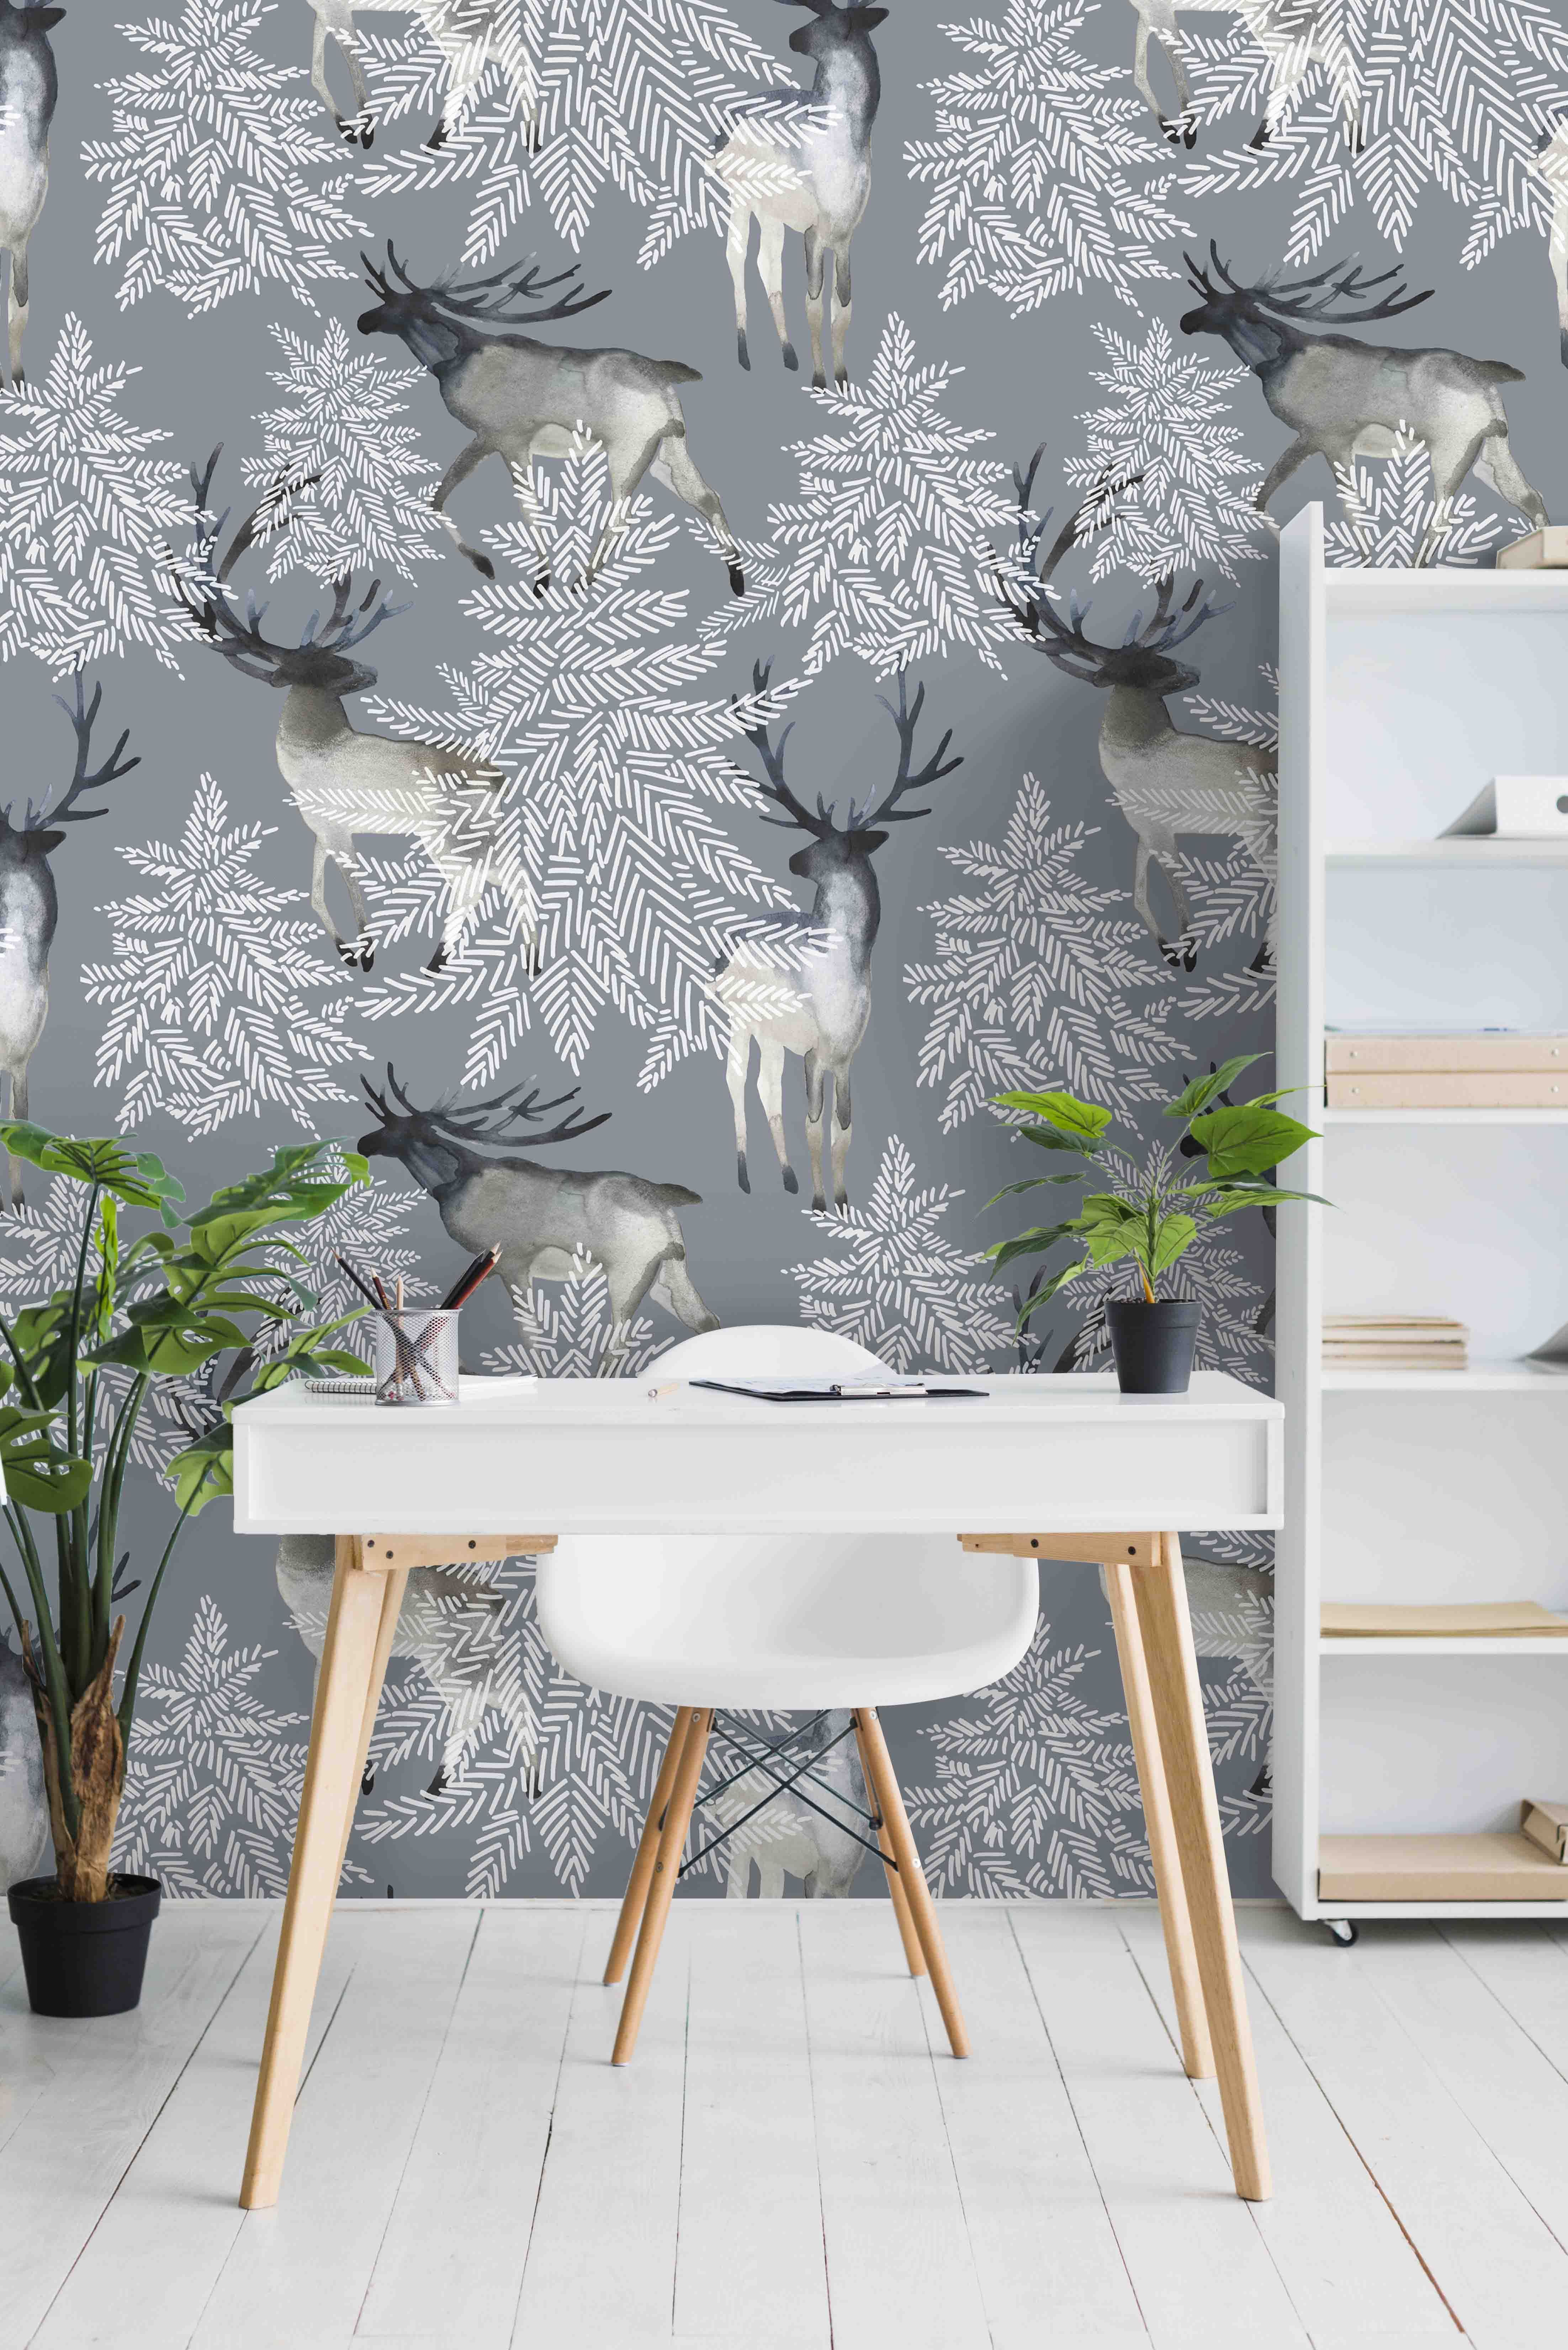 Winter Deer Gray Wallpaper Peel And Stick Wall Covering By Green Planet Christmas Decor Ideas Grey Wallpaper Home Decor Decals Decor